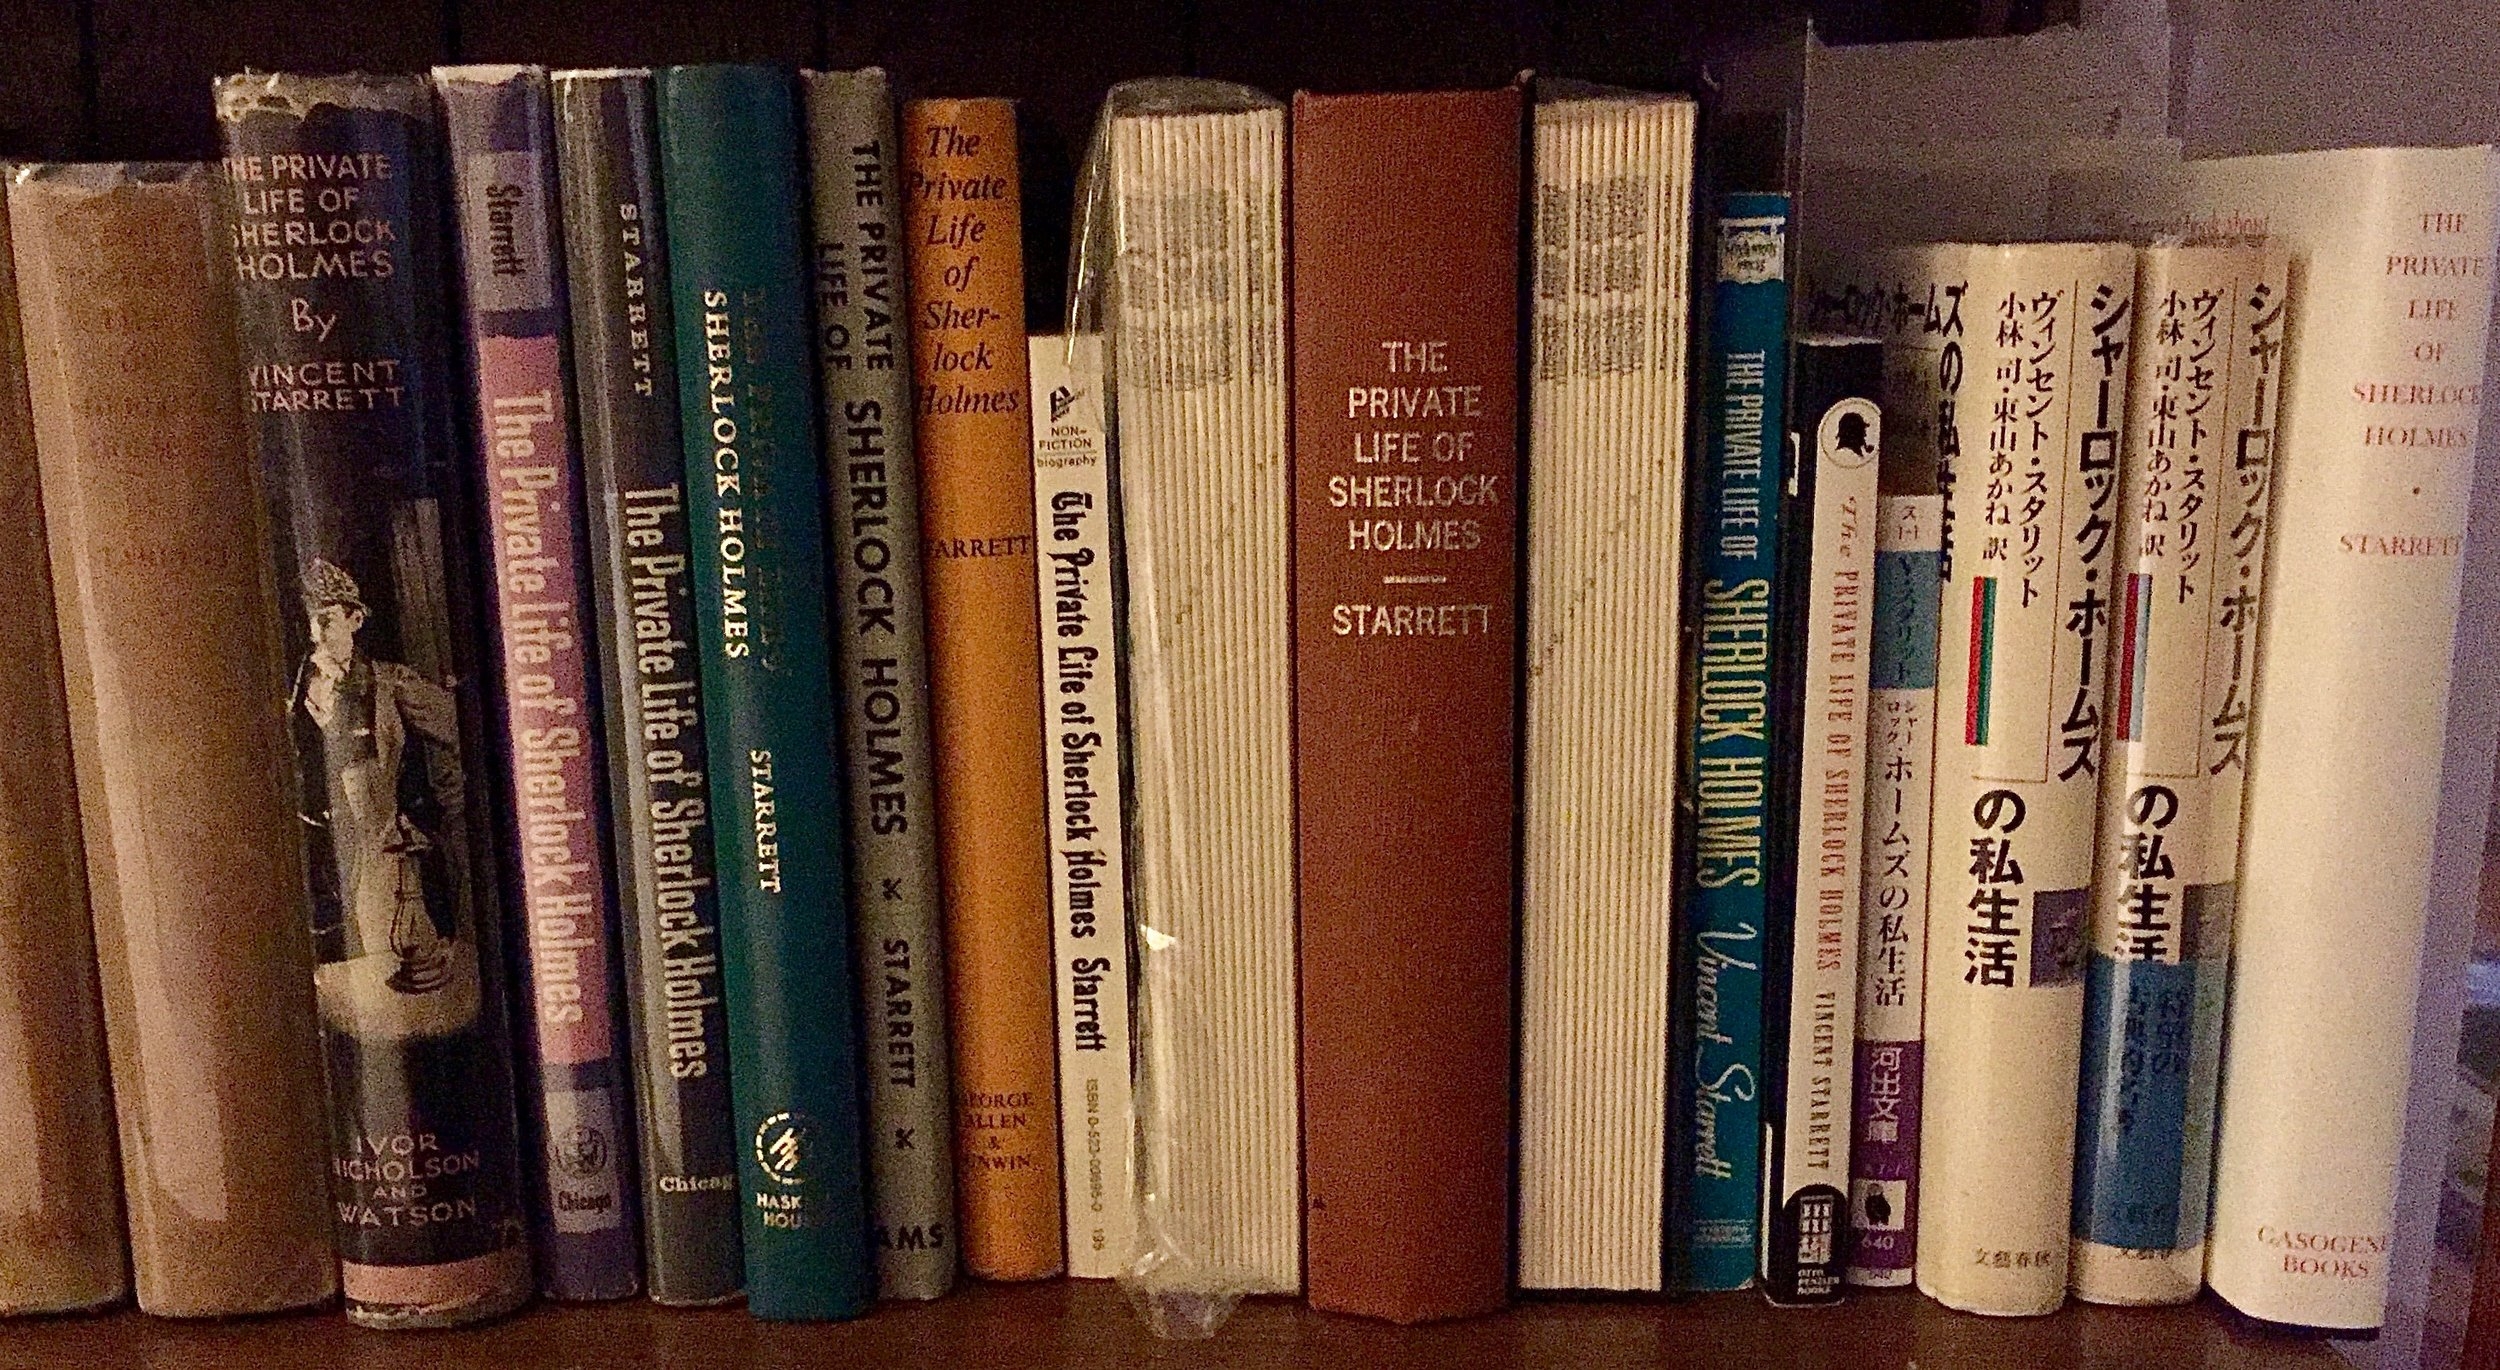 A shelf of Sherlock: The publication history of  The Private Life of Sherlock Holmes  on one shelf.